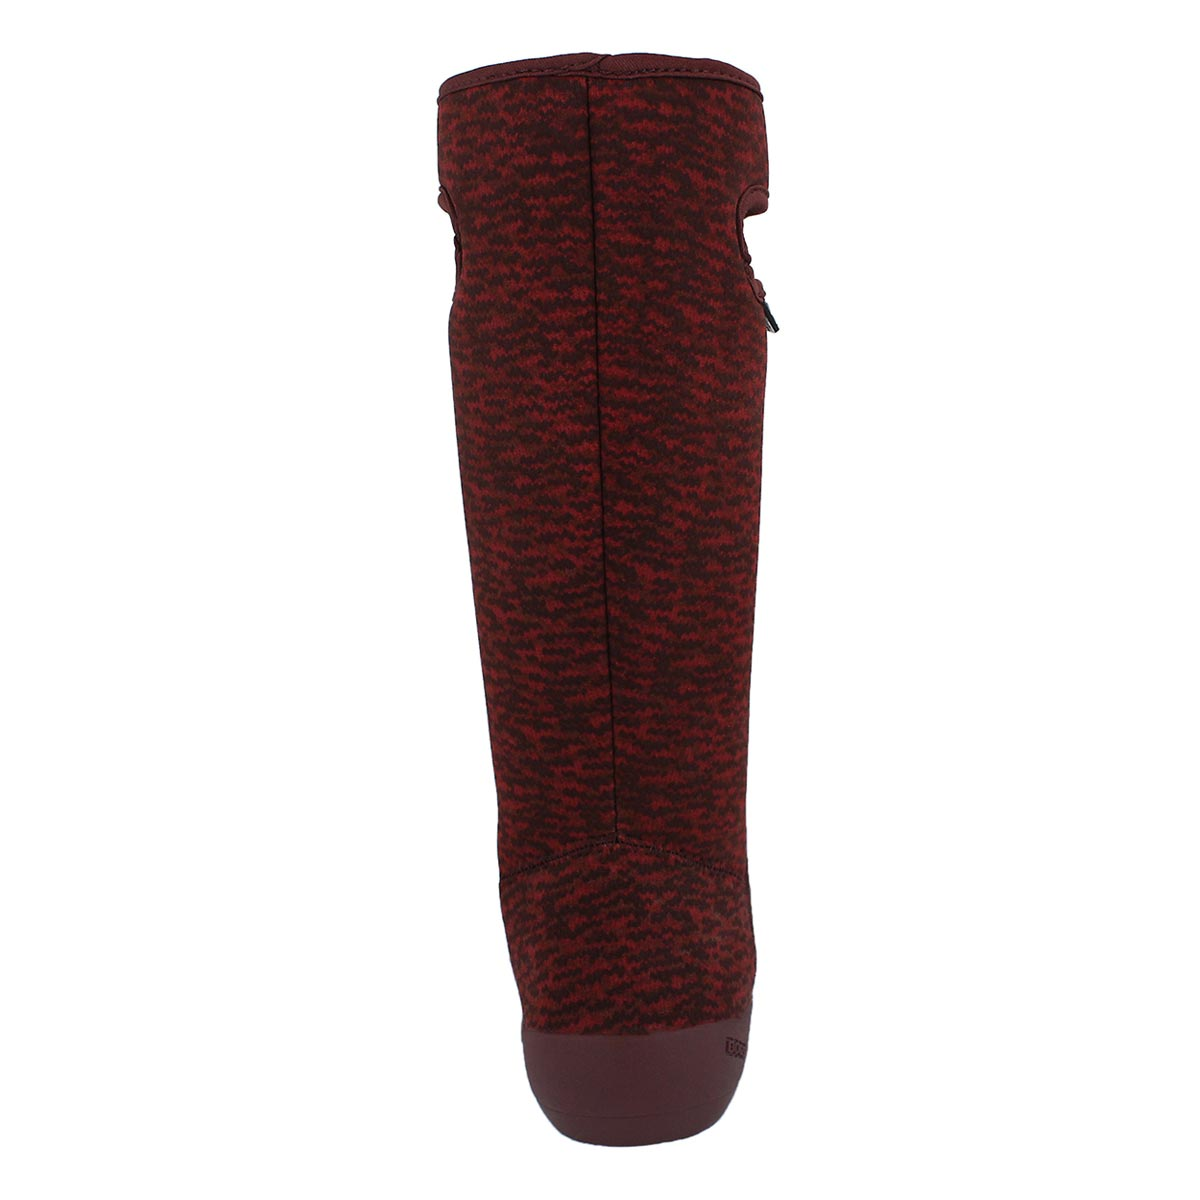 Lds Summit Knit rais watrprf winter boot